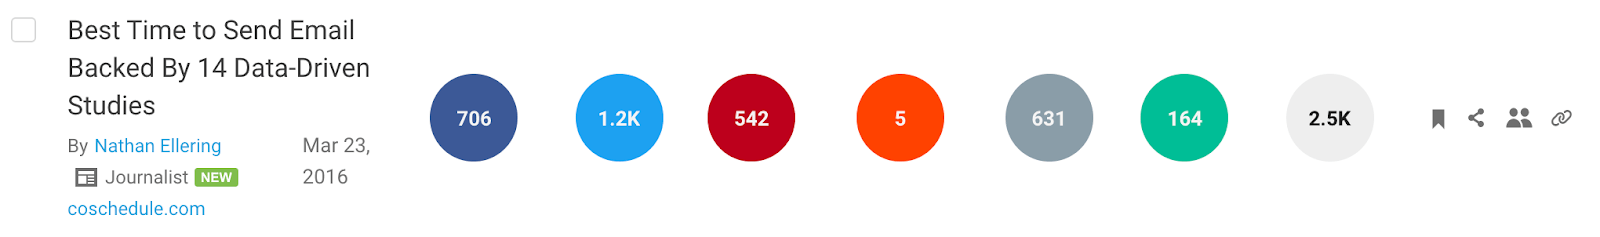 CoSchedule best time to send an email social stats